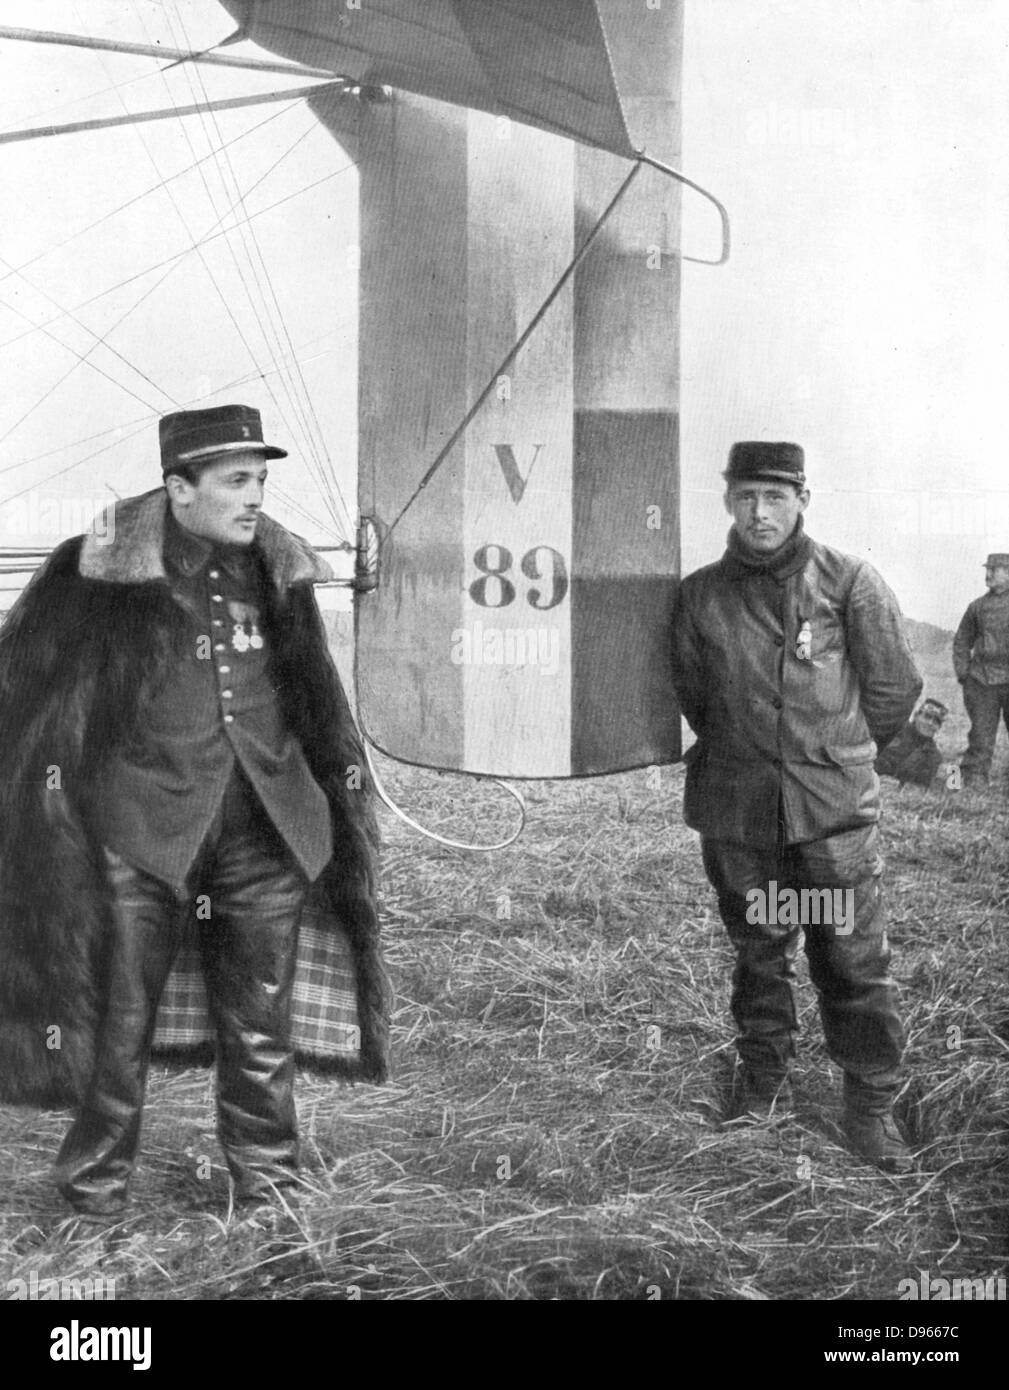 Flight-Sergeant Frantz and his mechanic Guenault who, on 5 October 1914, shot down a German Aviatik from their voisin Stock Photo